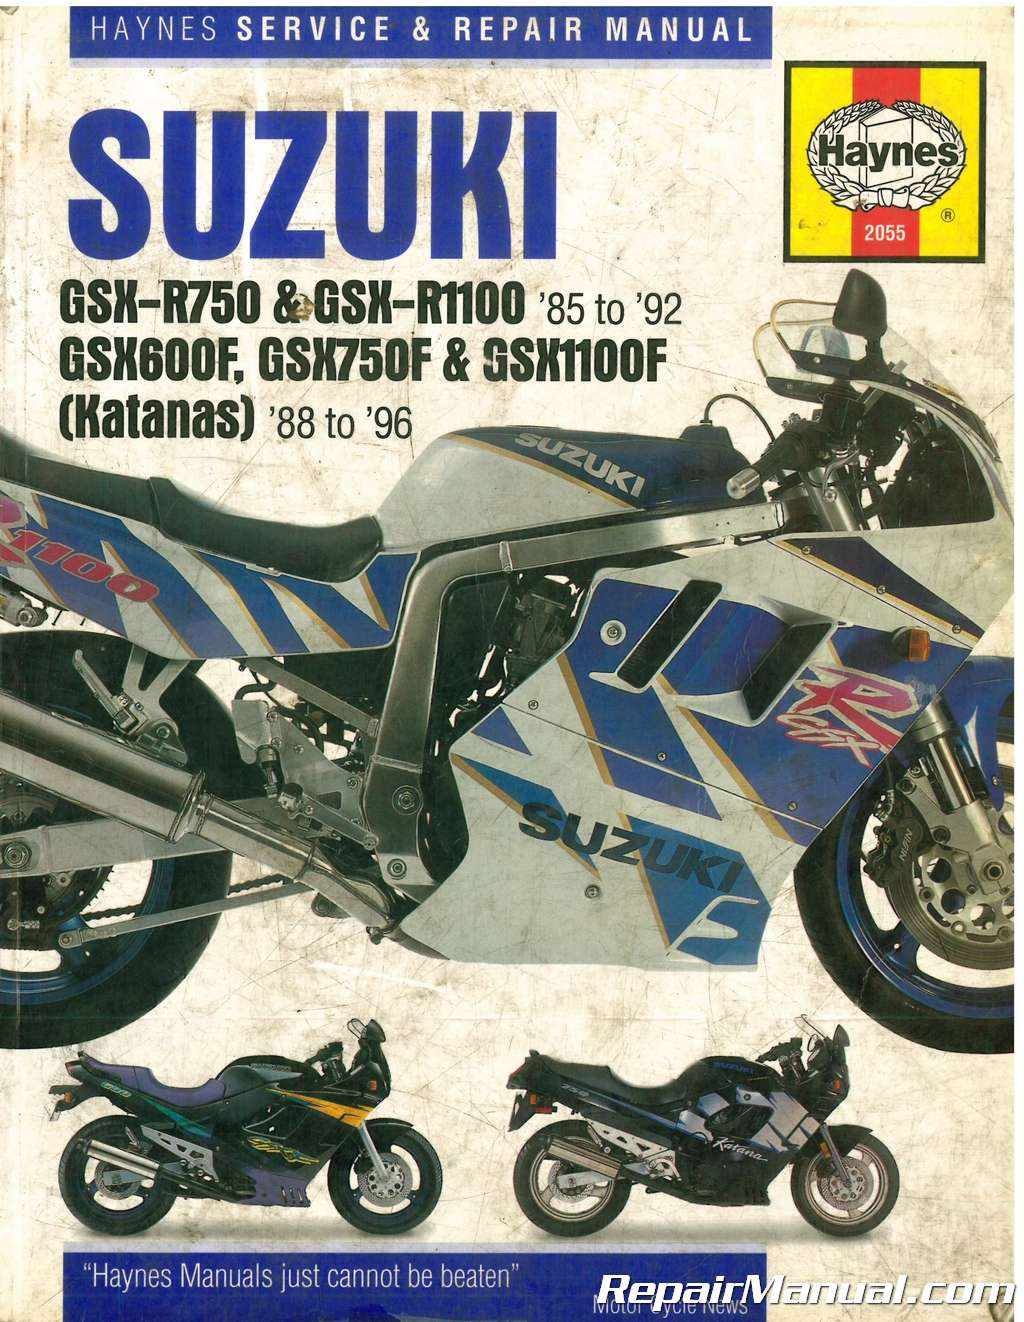 Used Suzuki GSX-R 750, GSX-R 1100 1985-1992 Katana 600 750 1100 1988-1996  Haynes Motorcycle Repair Manual